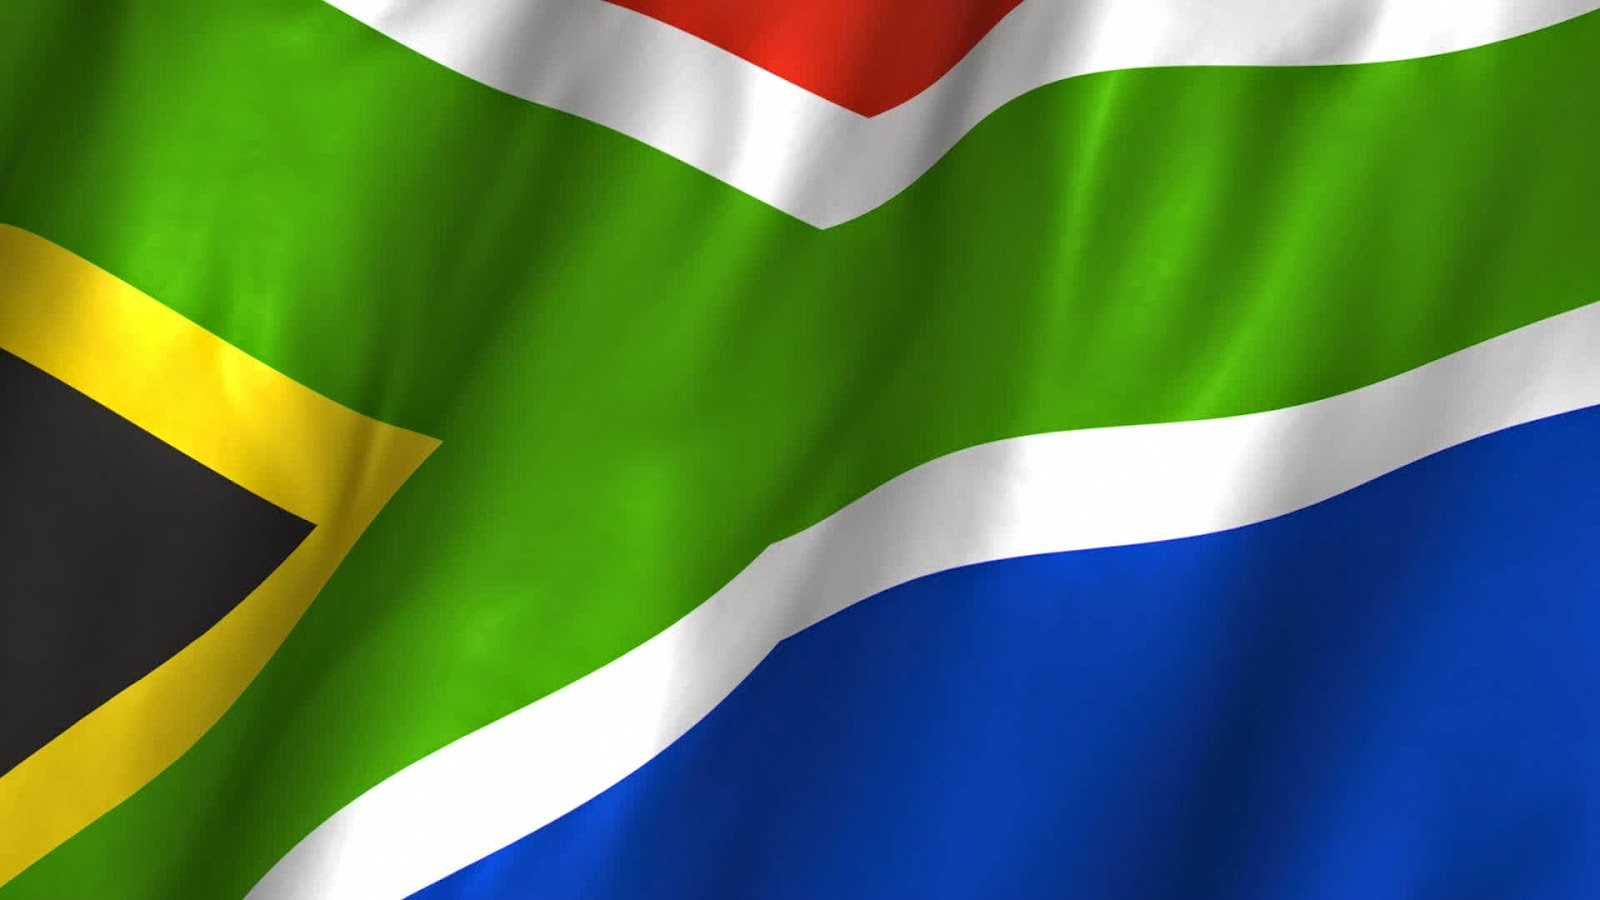 south african flag wallpaper - photo #23